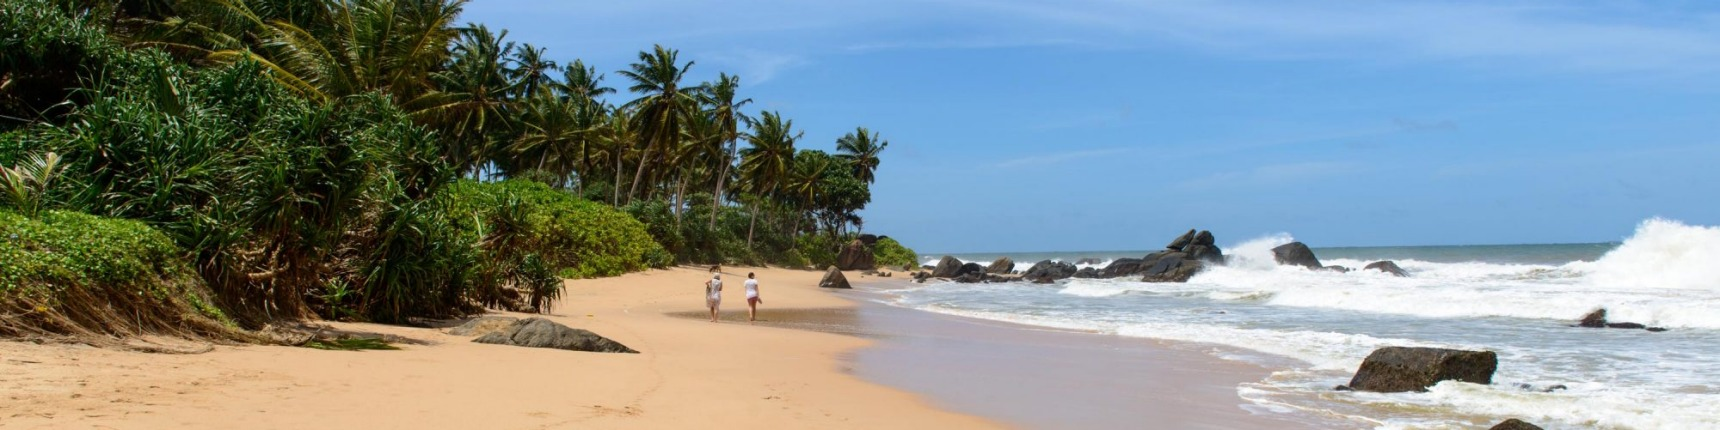 Sri Lanka, beach